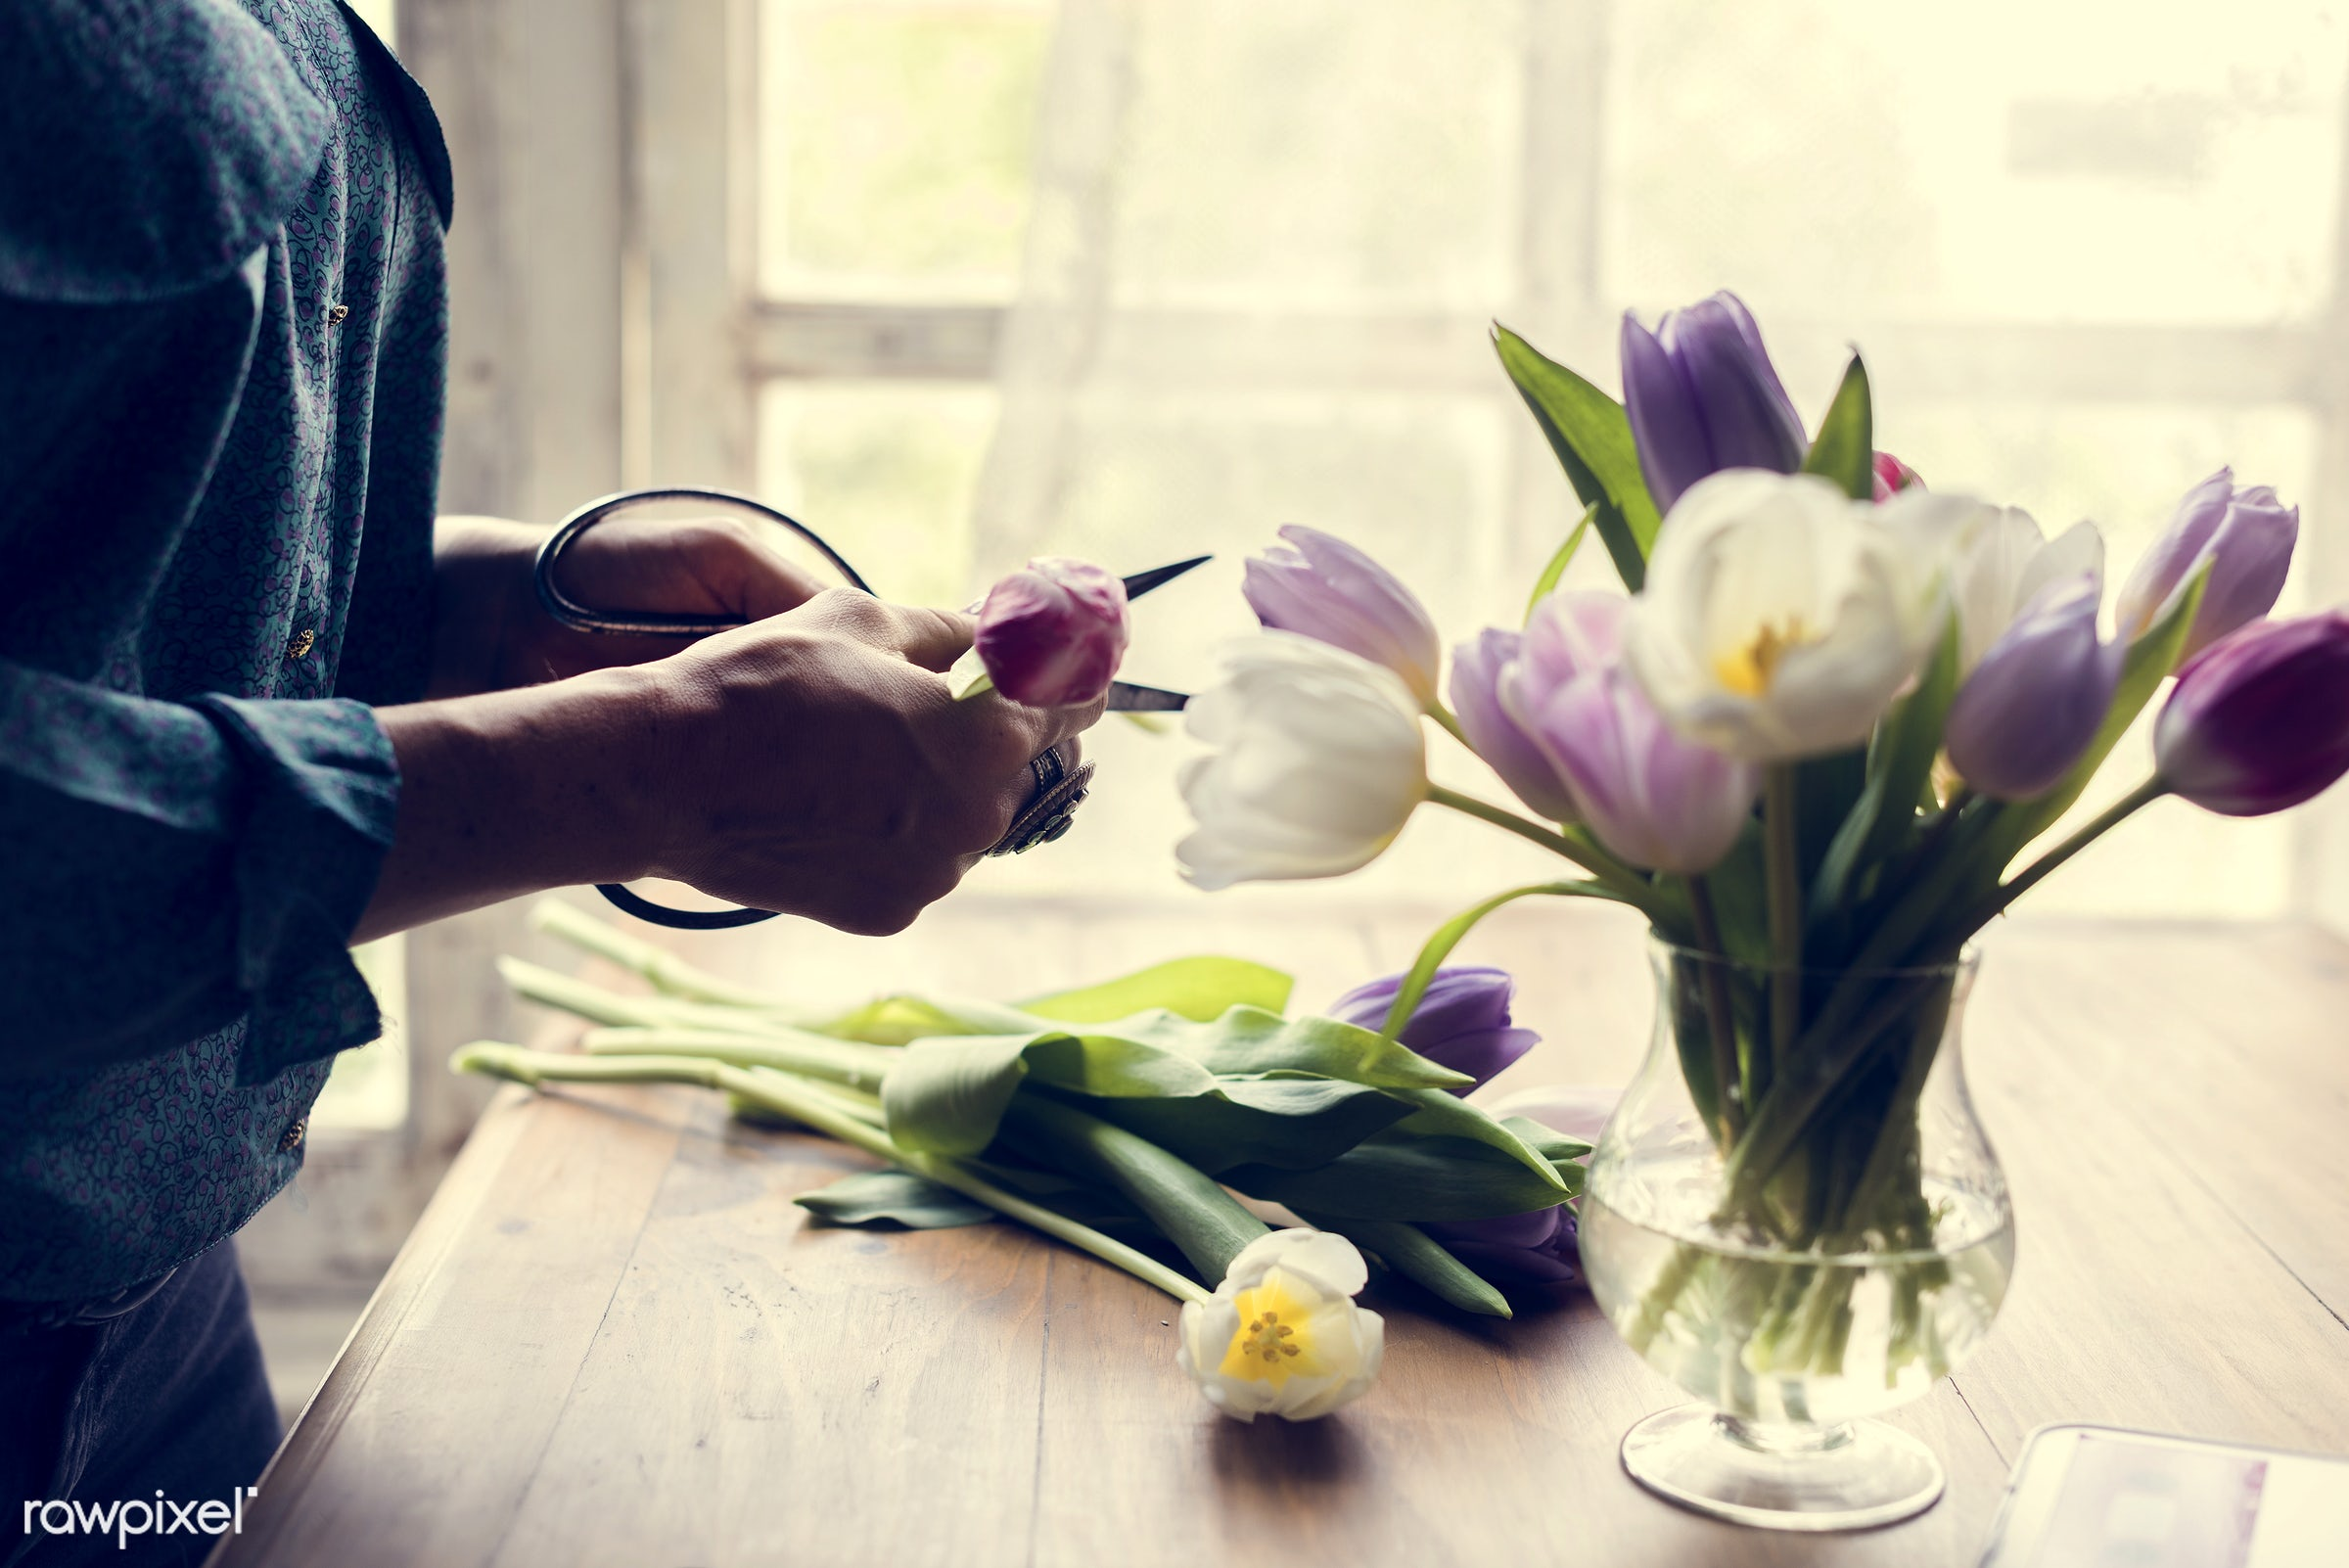 person, workspace, workplace, leaf, desk, beauty, creativity, people, blossom, nature, fresh, hands, woman, refresh, flower...